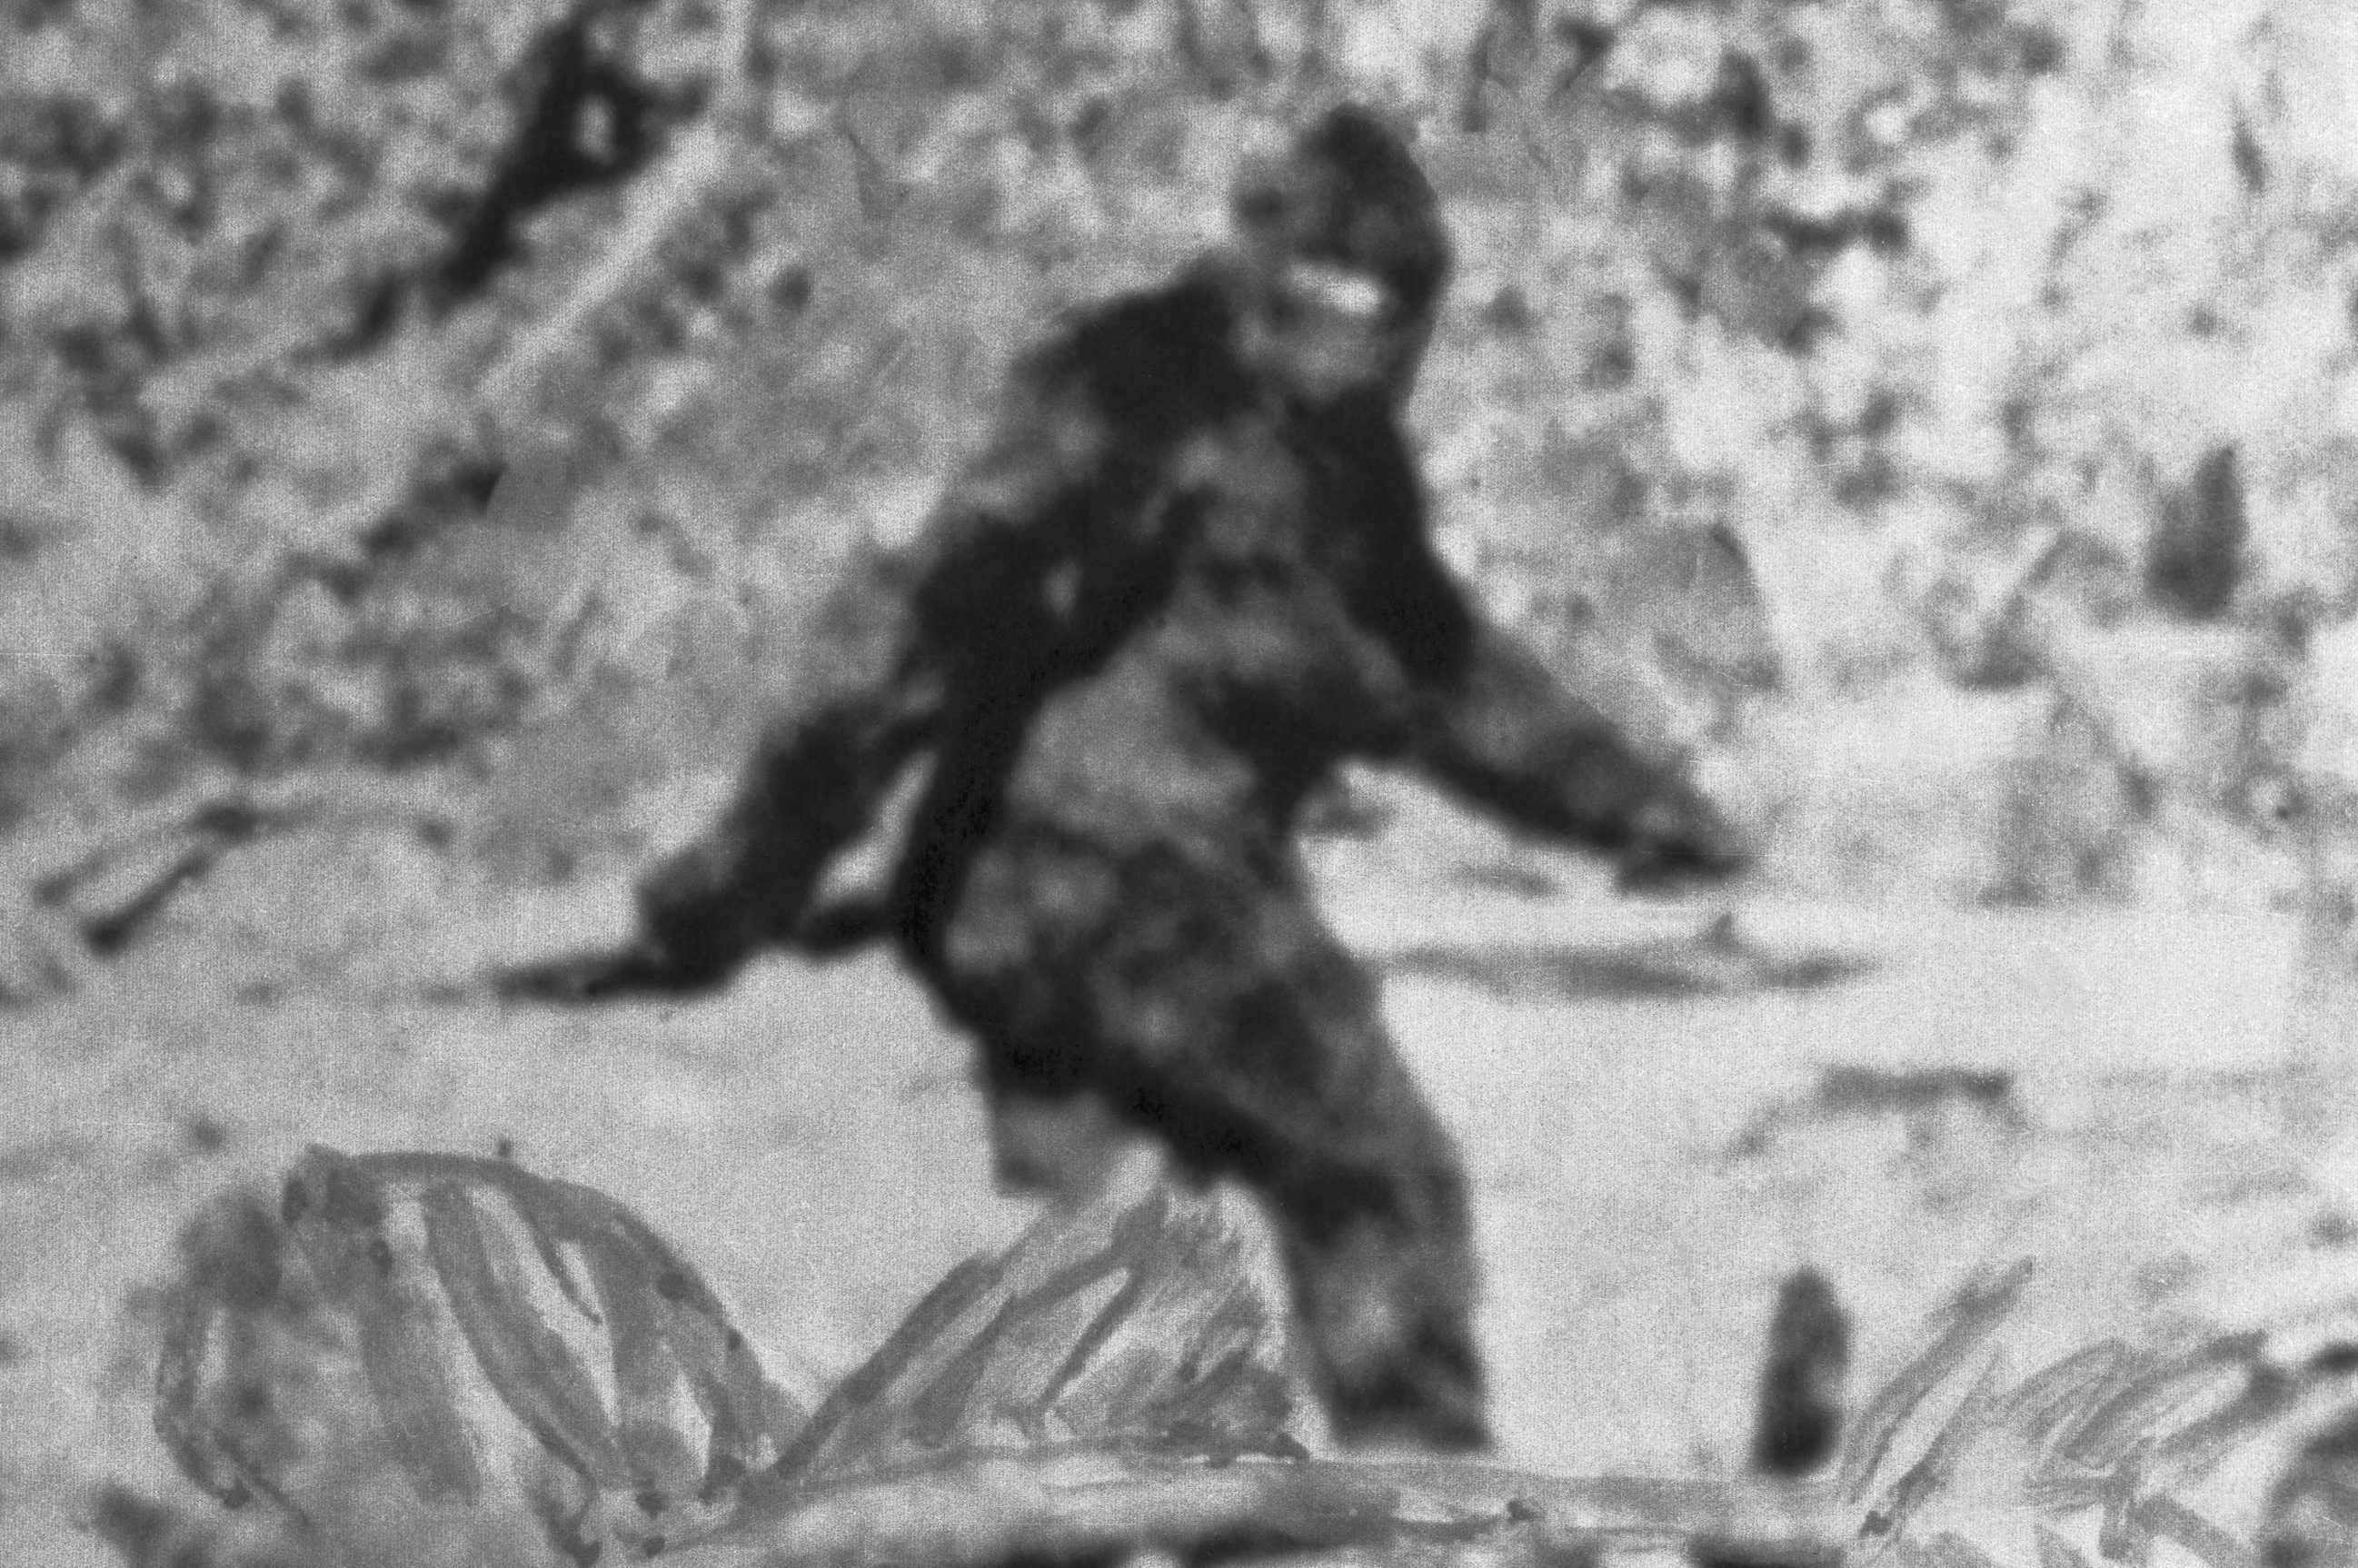 Lawmaker calls for Bigfoot 'hunting season' in Oklahoma